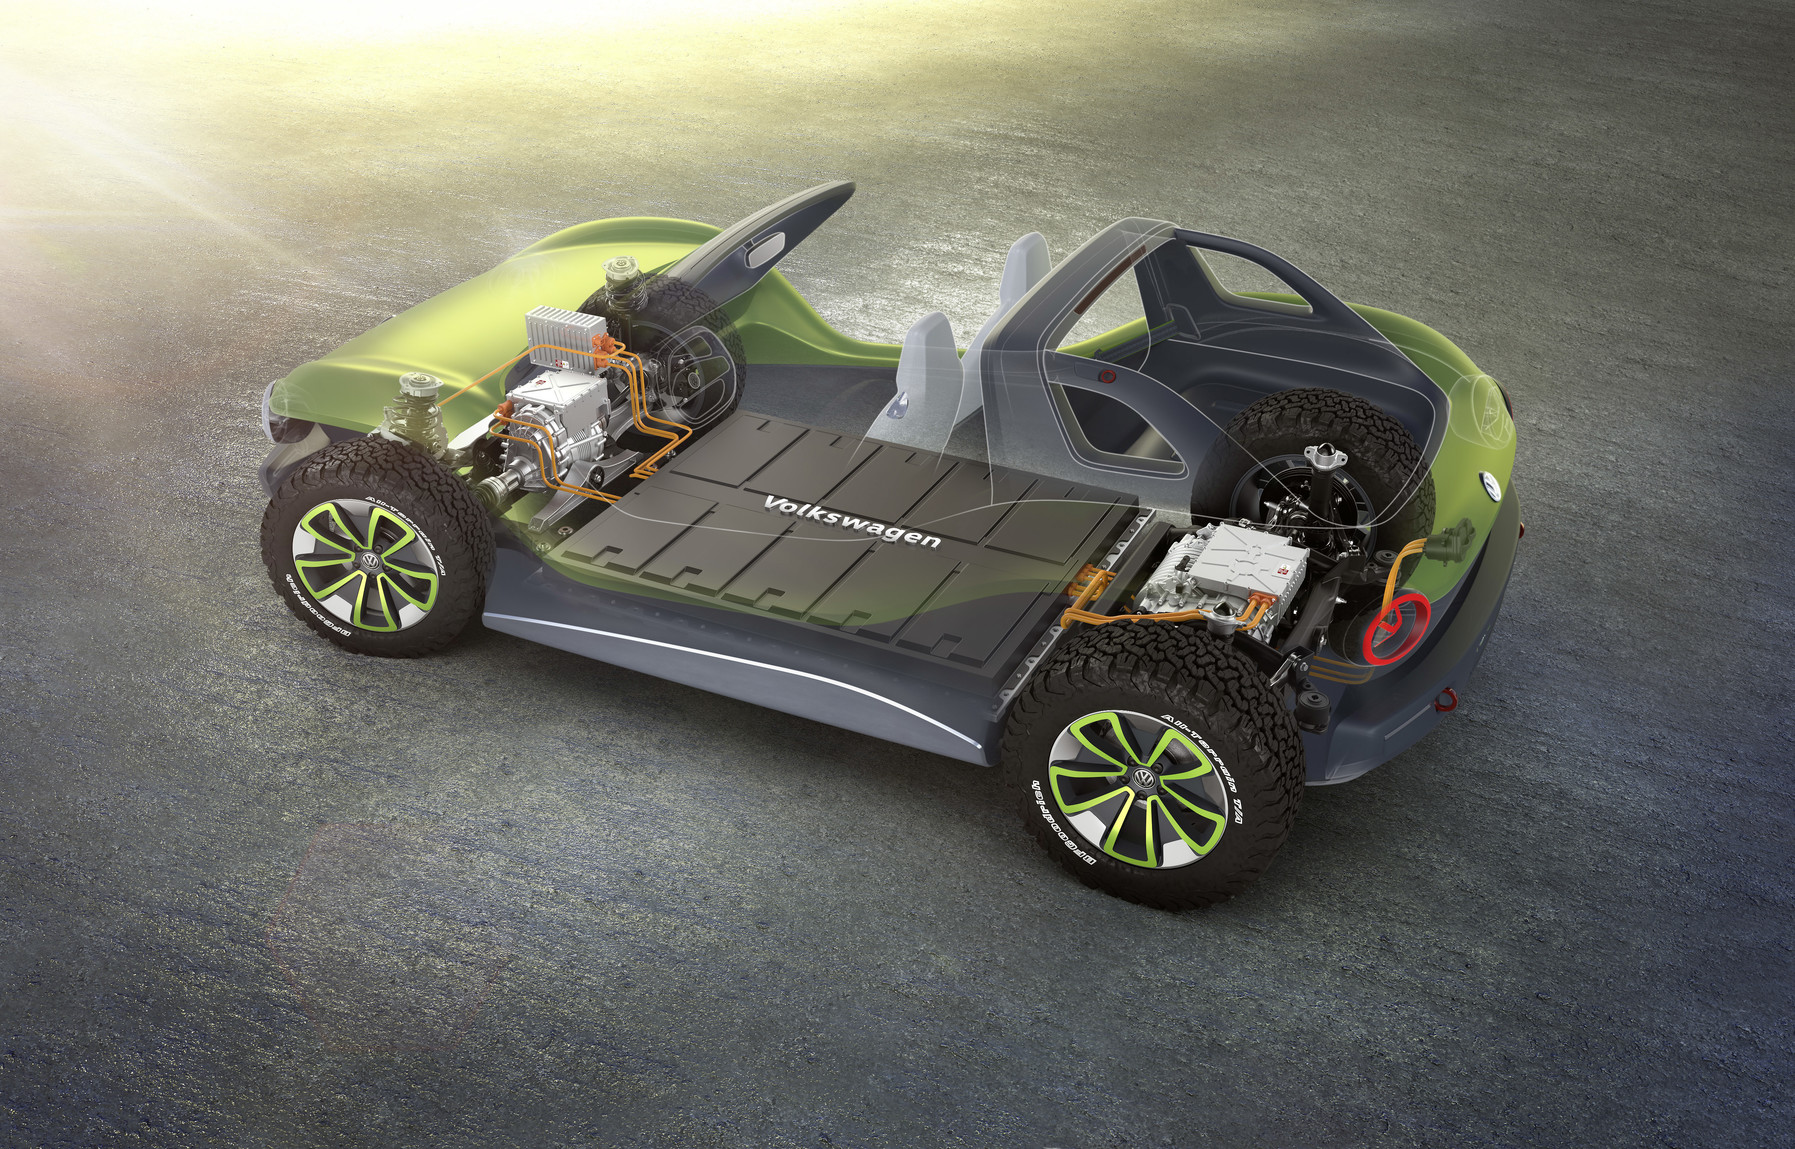 Volkswagen I.D. Buggy power plant and body